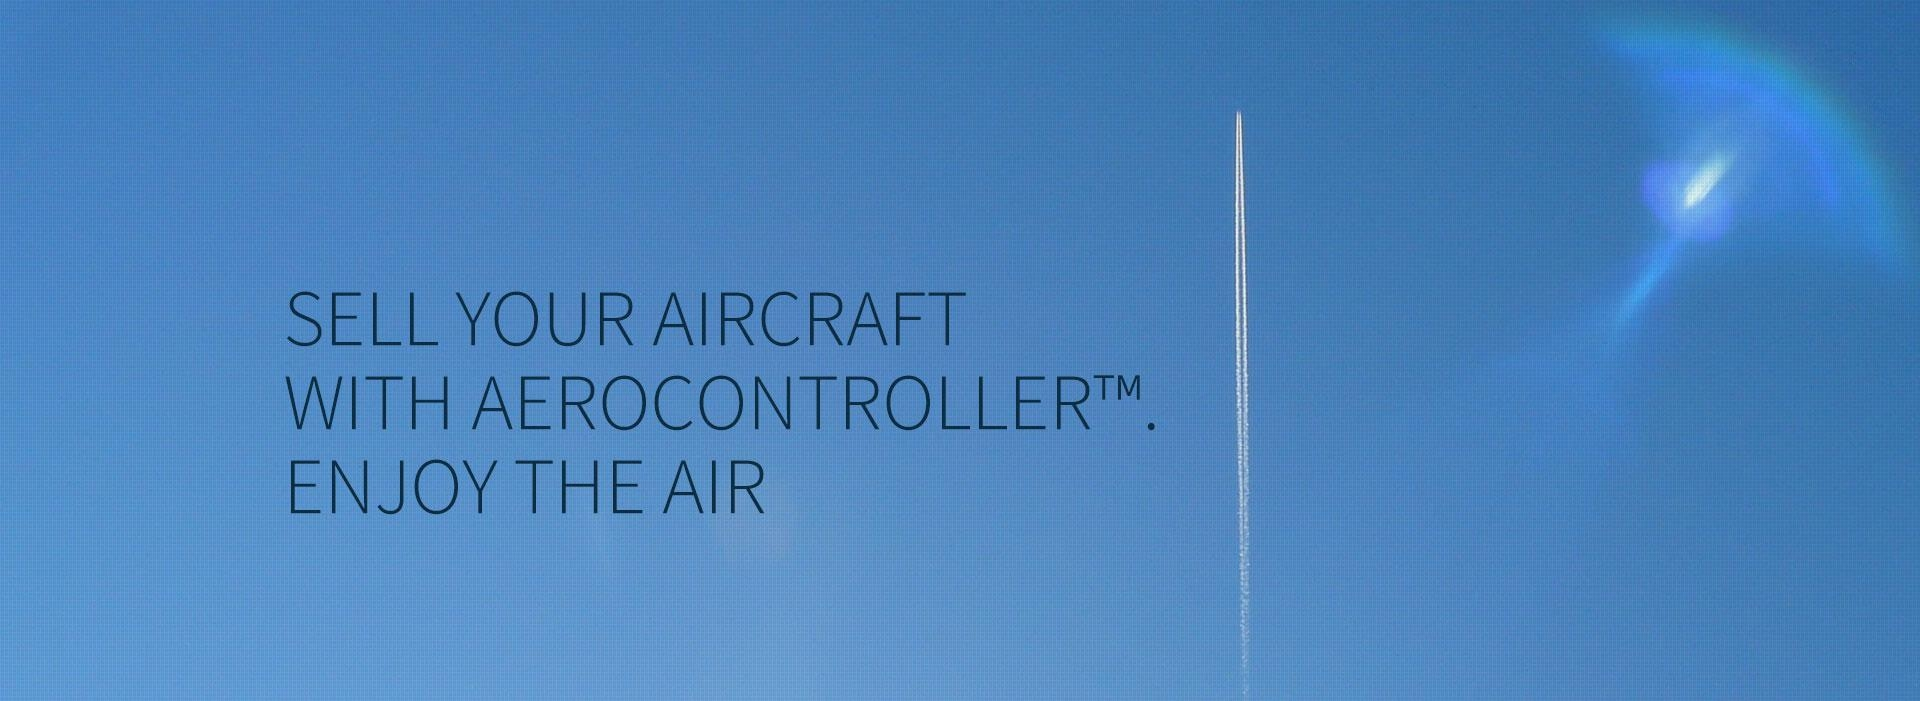 Sell Your Aircraft With AeroController. Enjoy The Air.